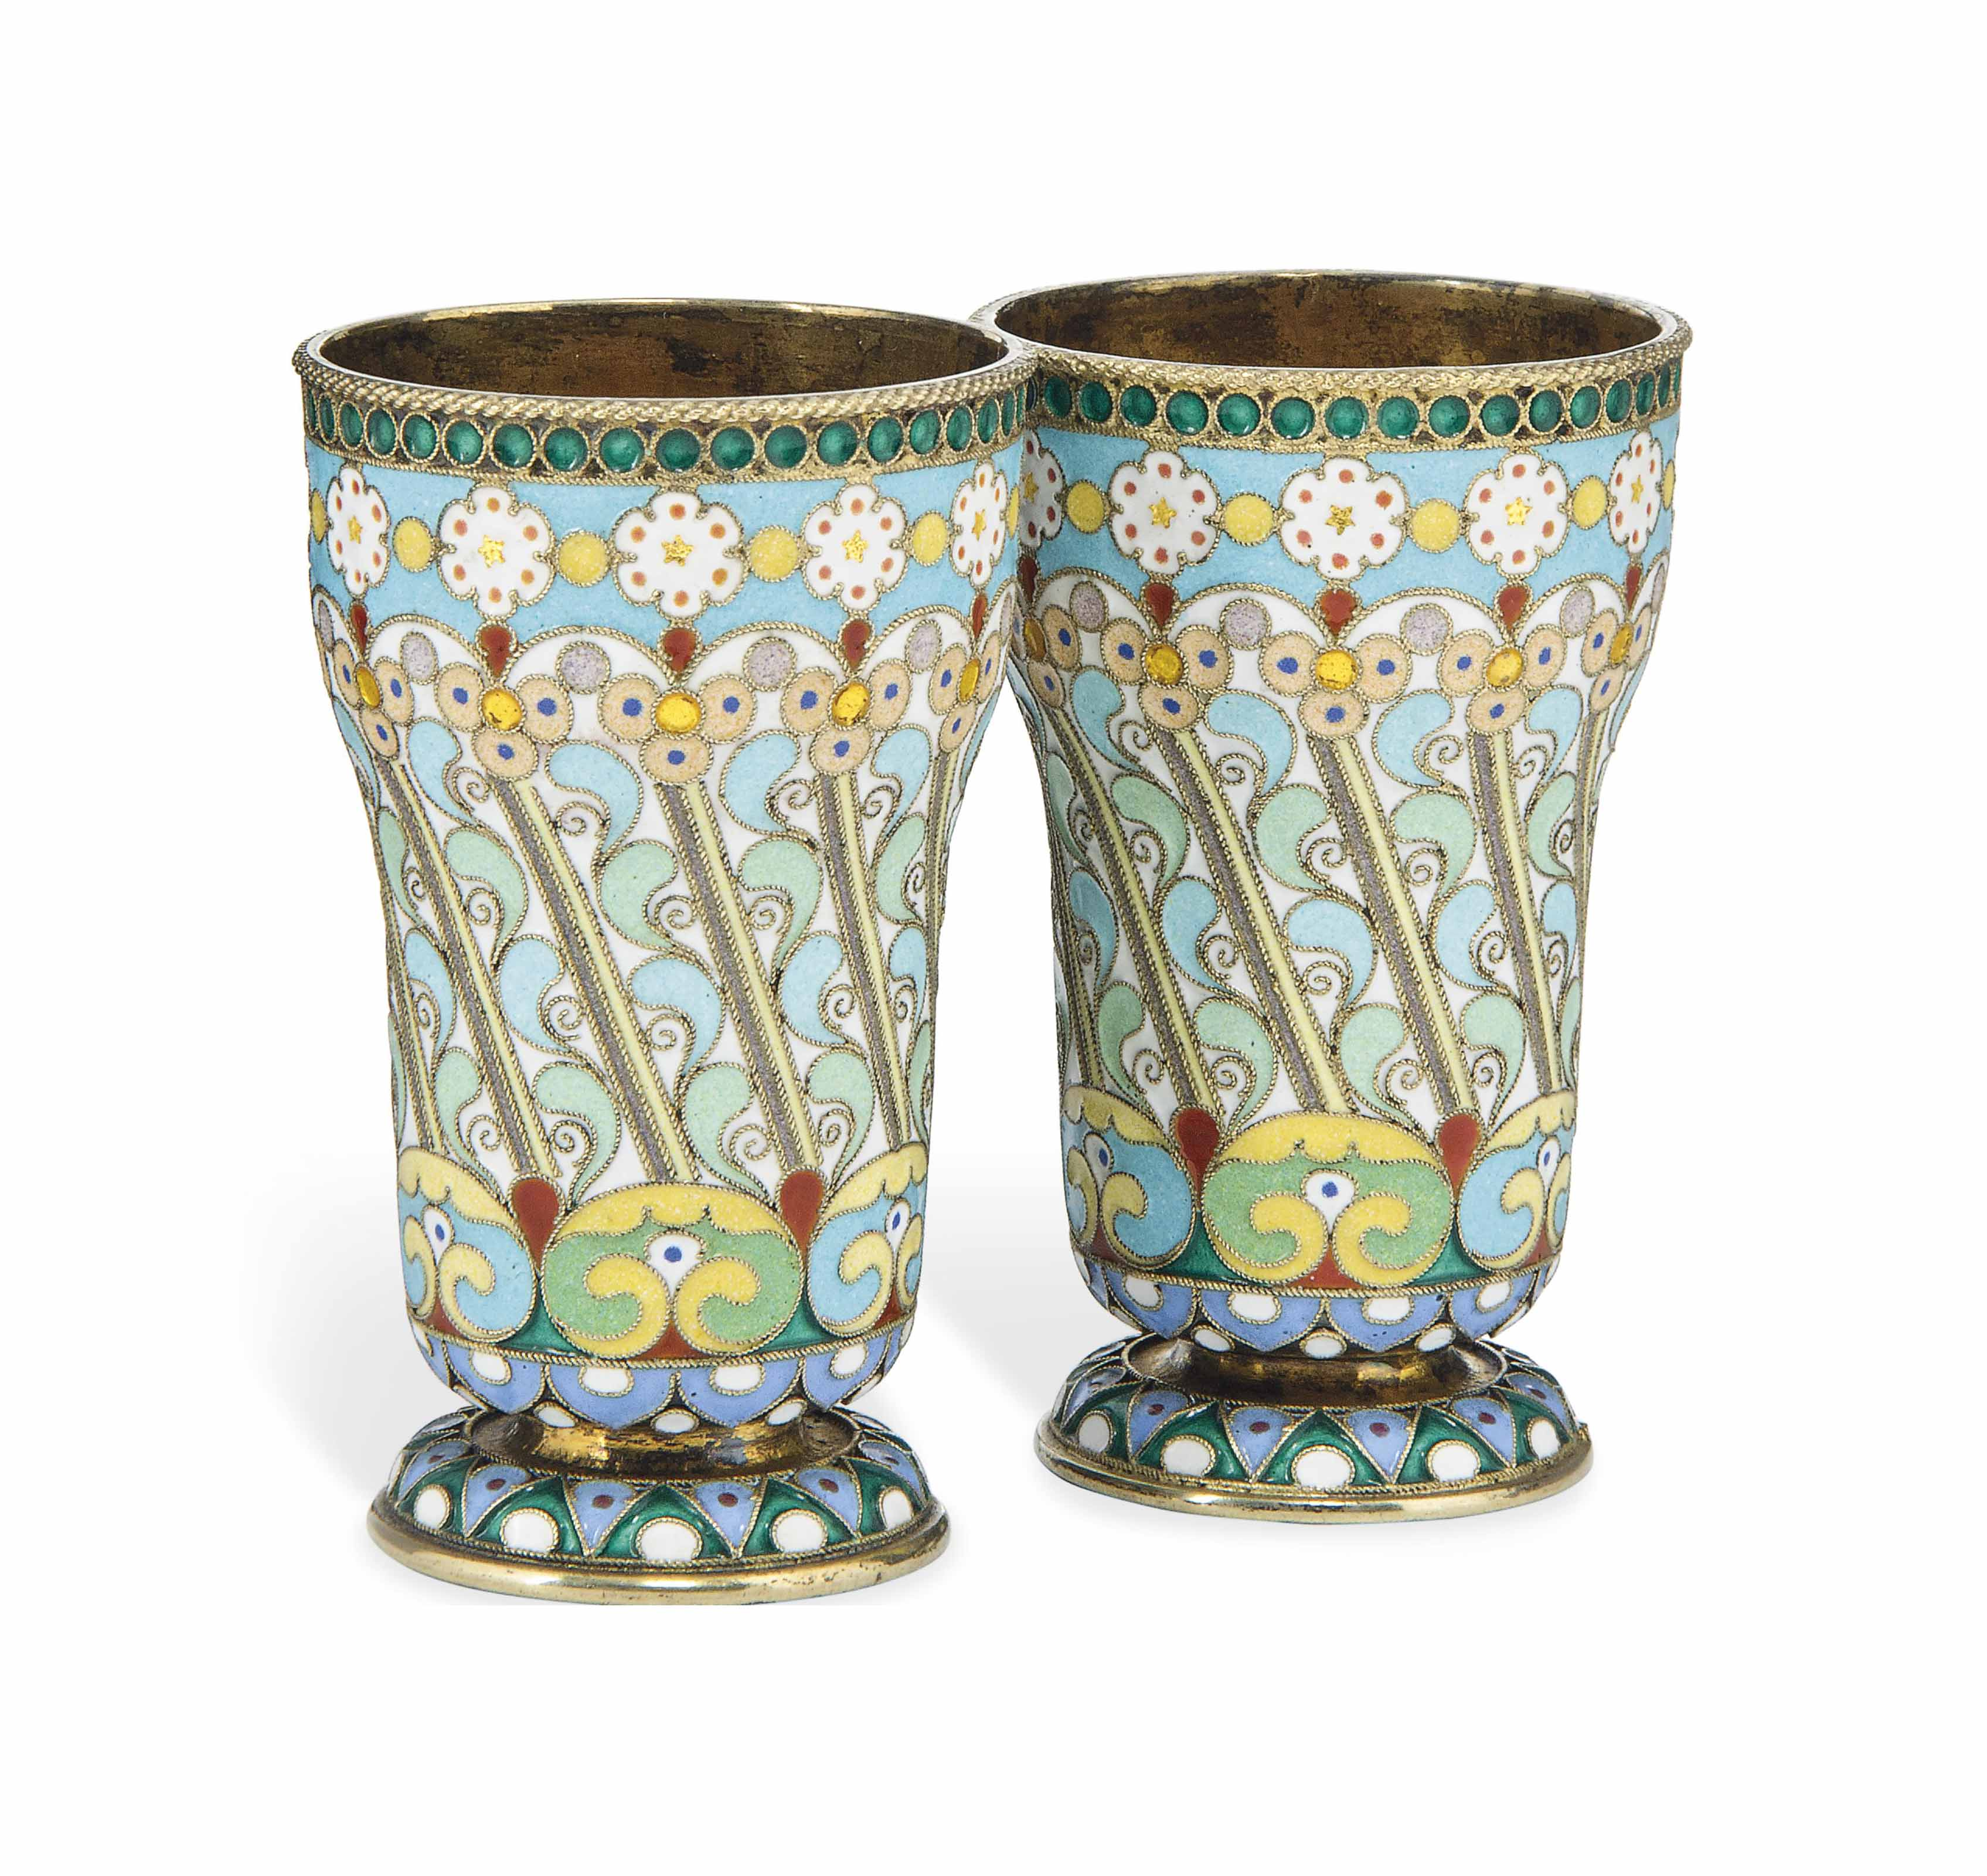 A PAIR OF RUSSIAN SILVER-GILT AND CLOISONNÉ ENAMEL BEAKERS